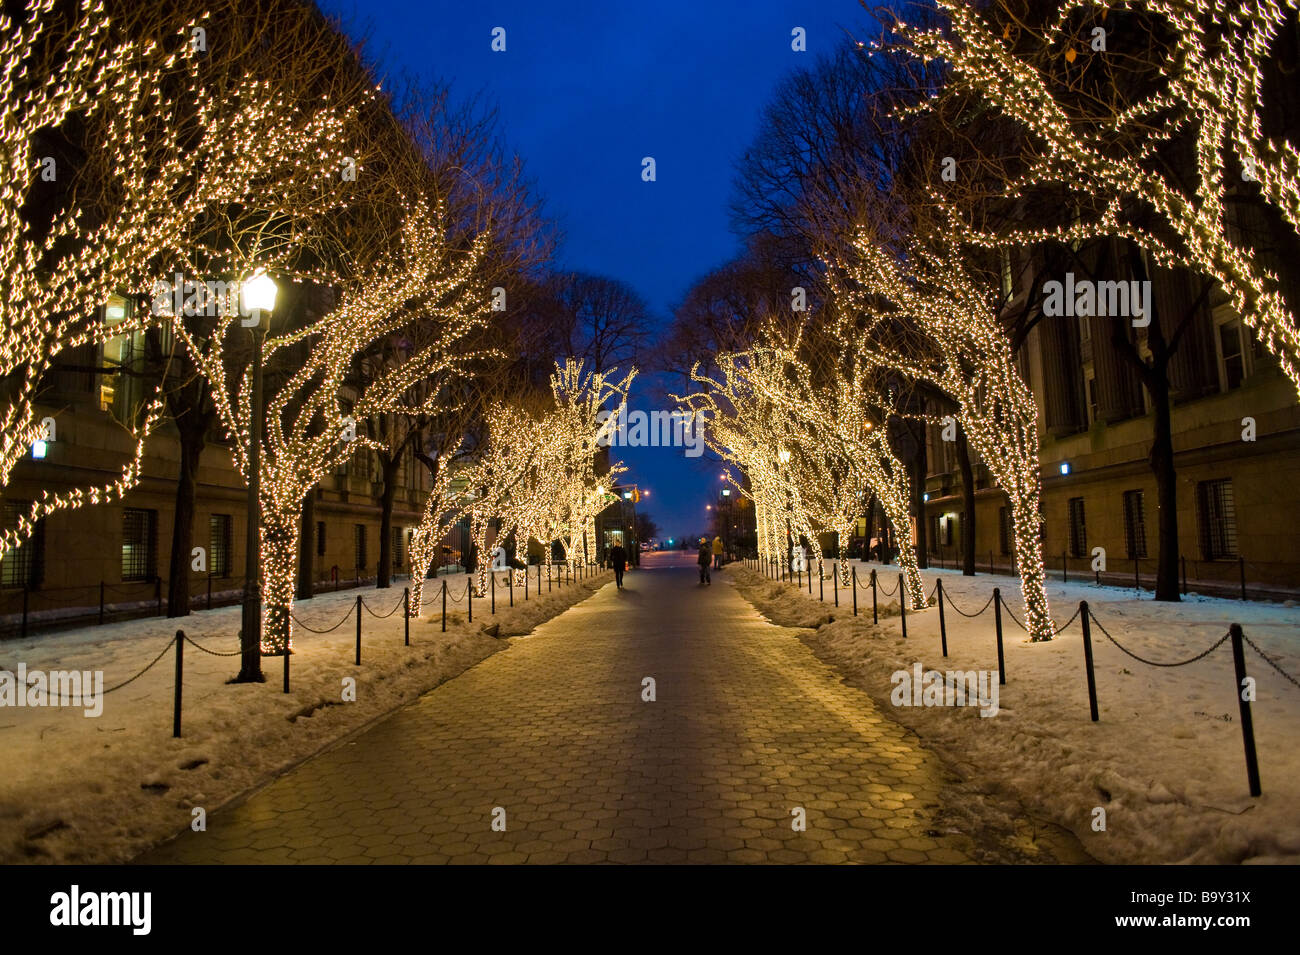 Christmas Lights On Trees In The Columbia University